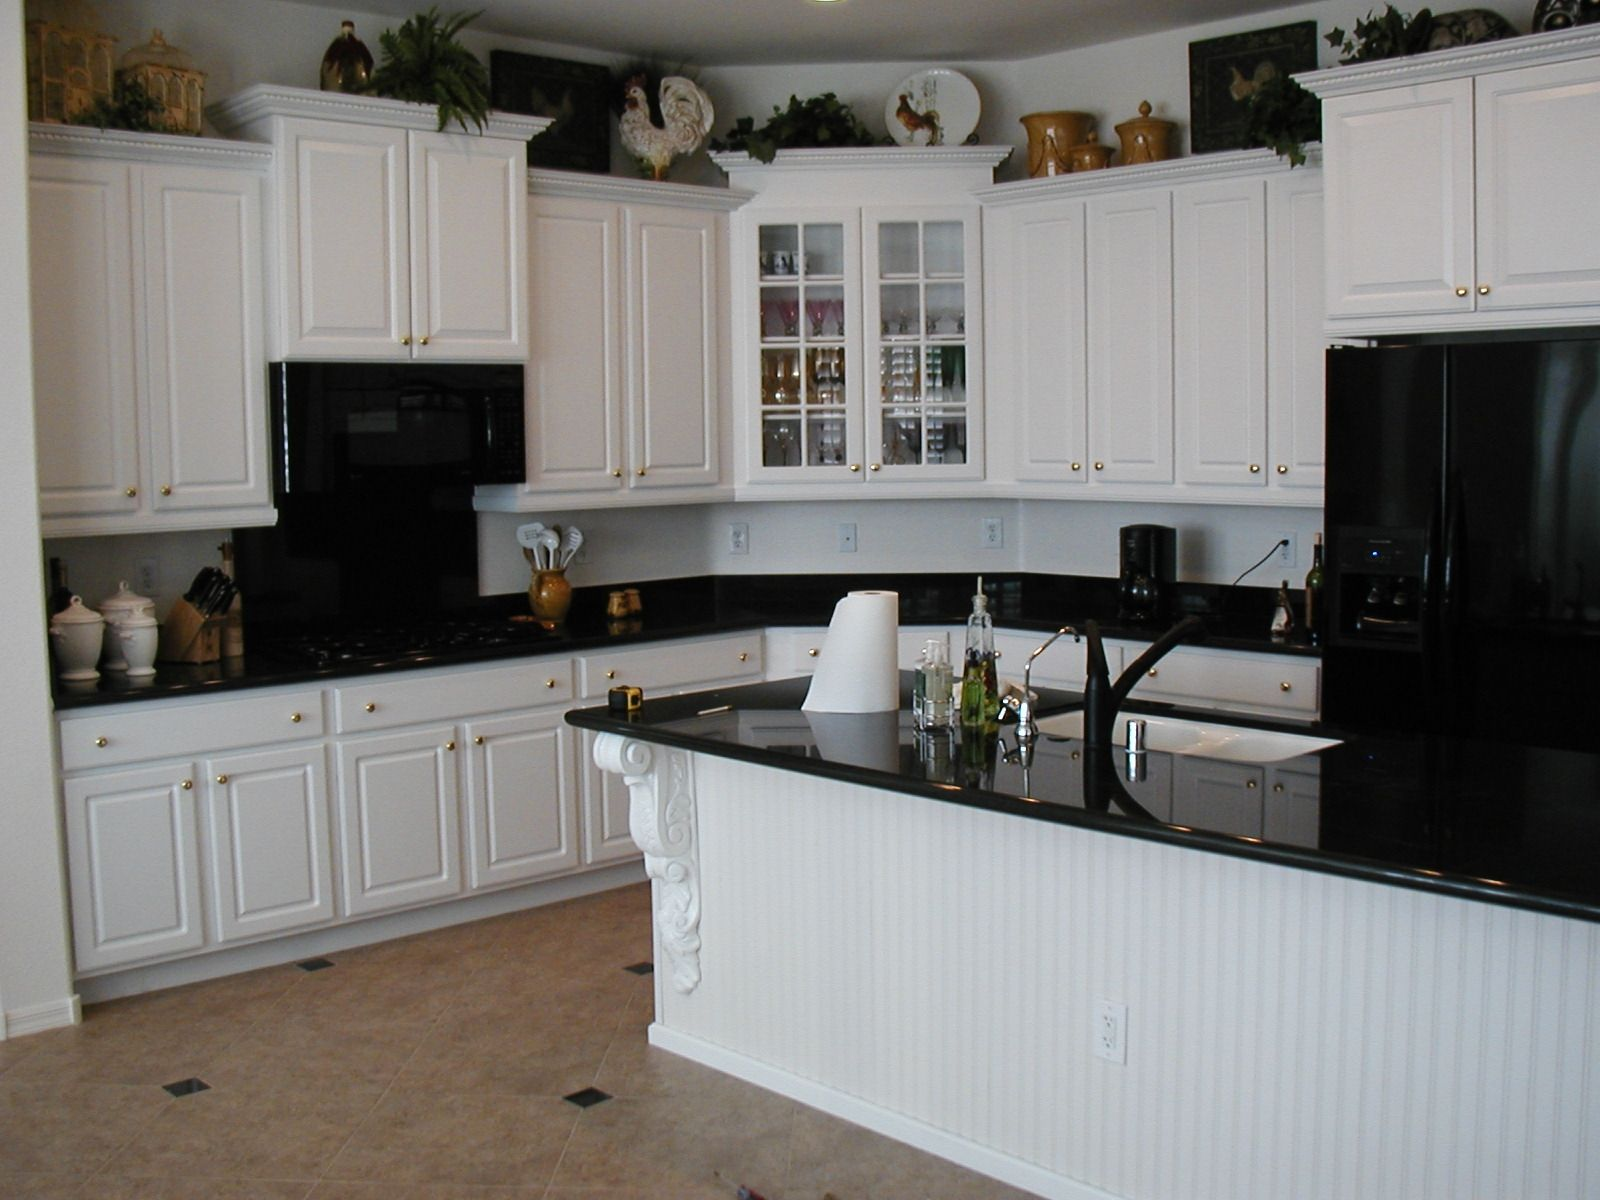 Best Photos Of White Kitchens With Black Appliances And Black 400 x 300